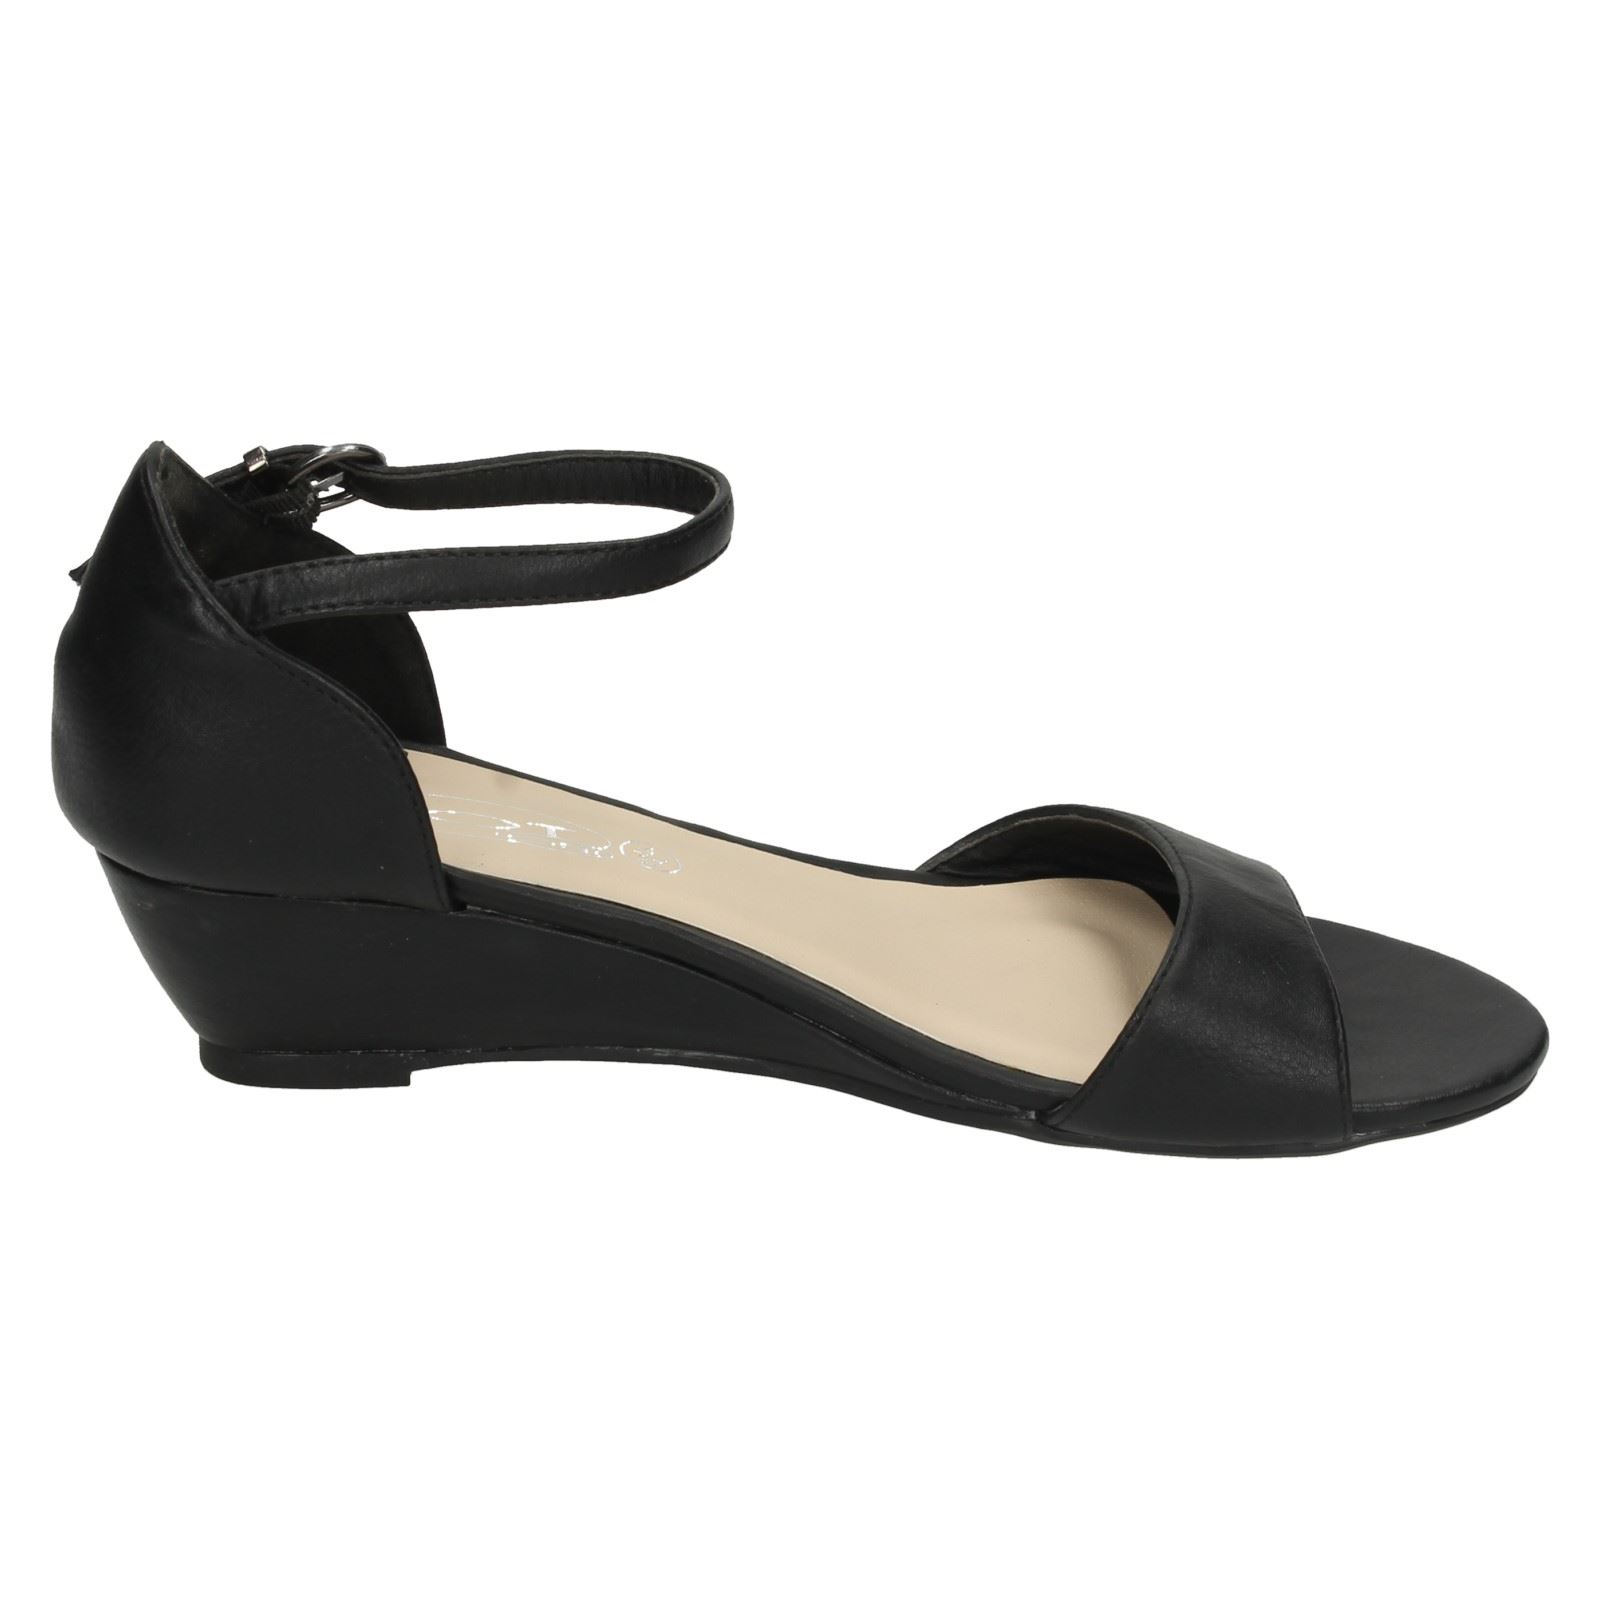 1f64d9b0573e Spot-On-Ladies-Low-Wedge-Ankle-Strap-Sandals thumbnail